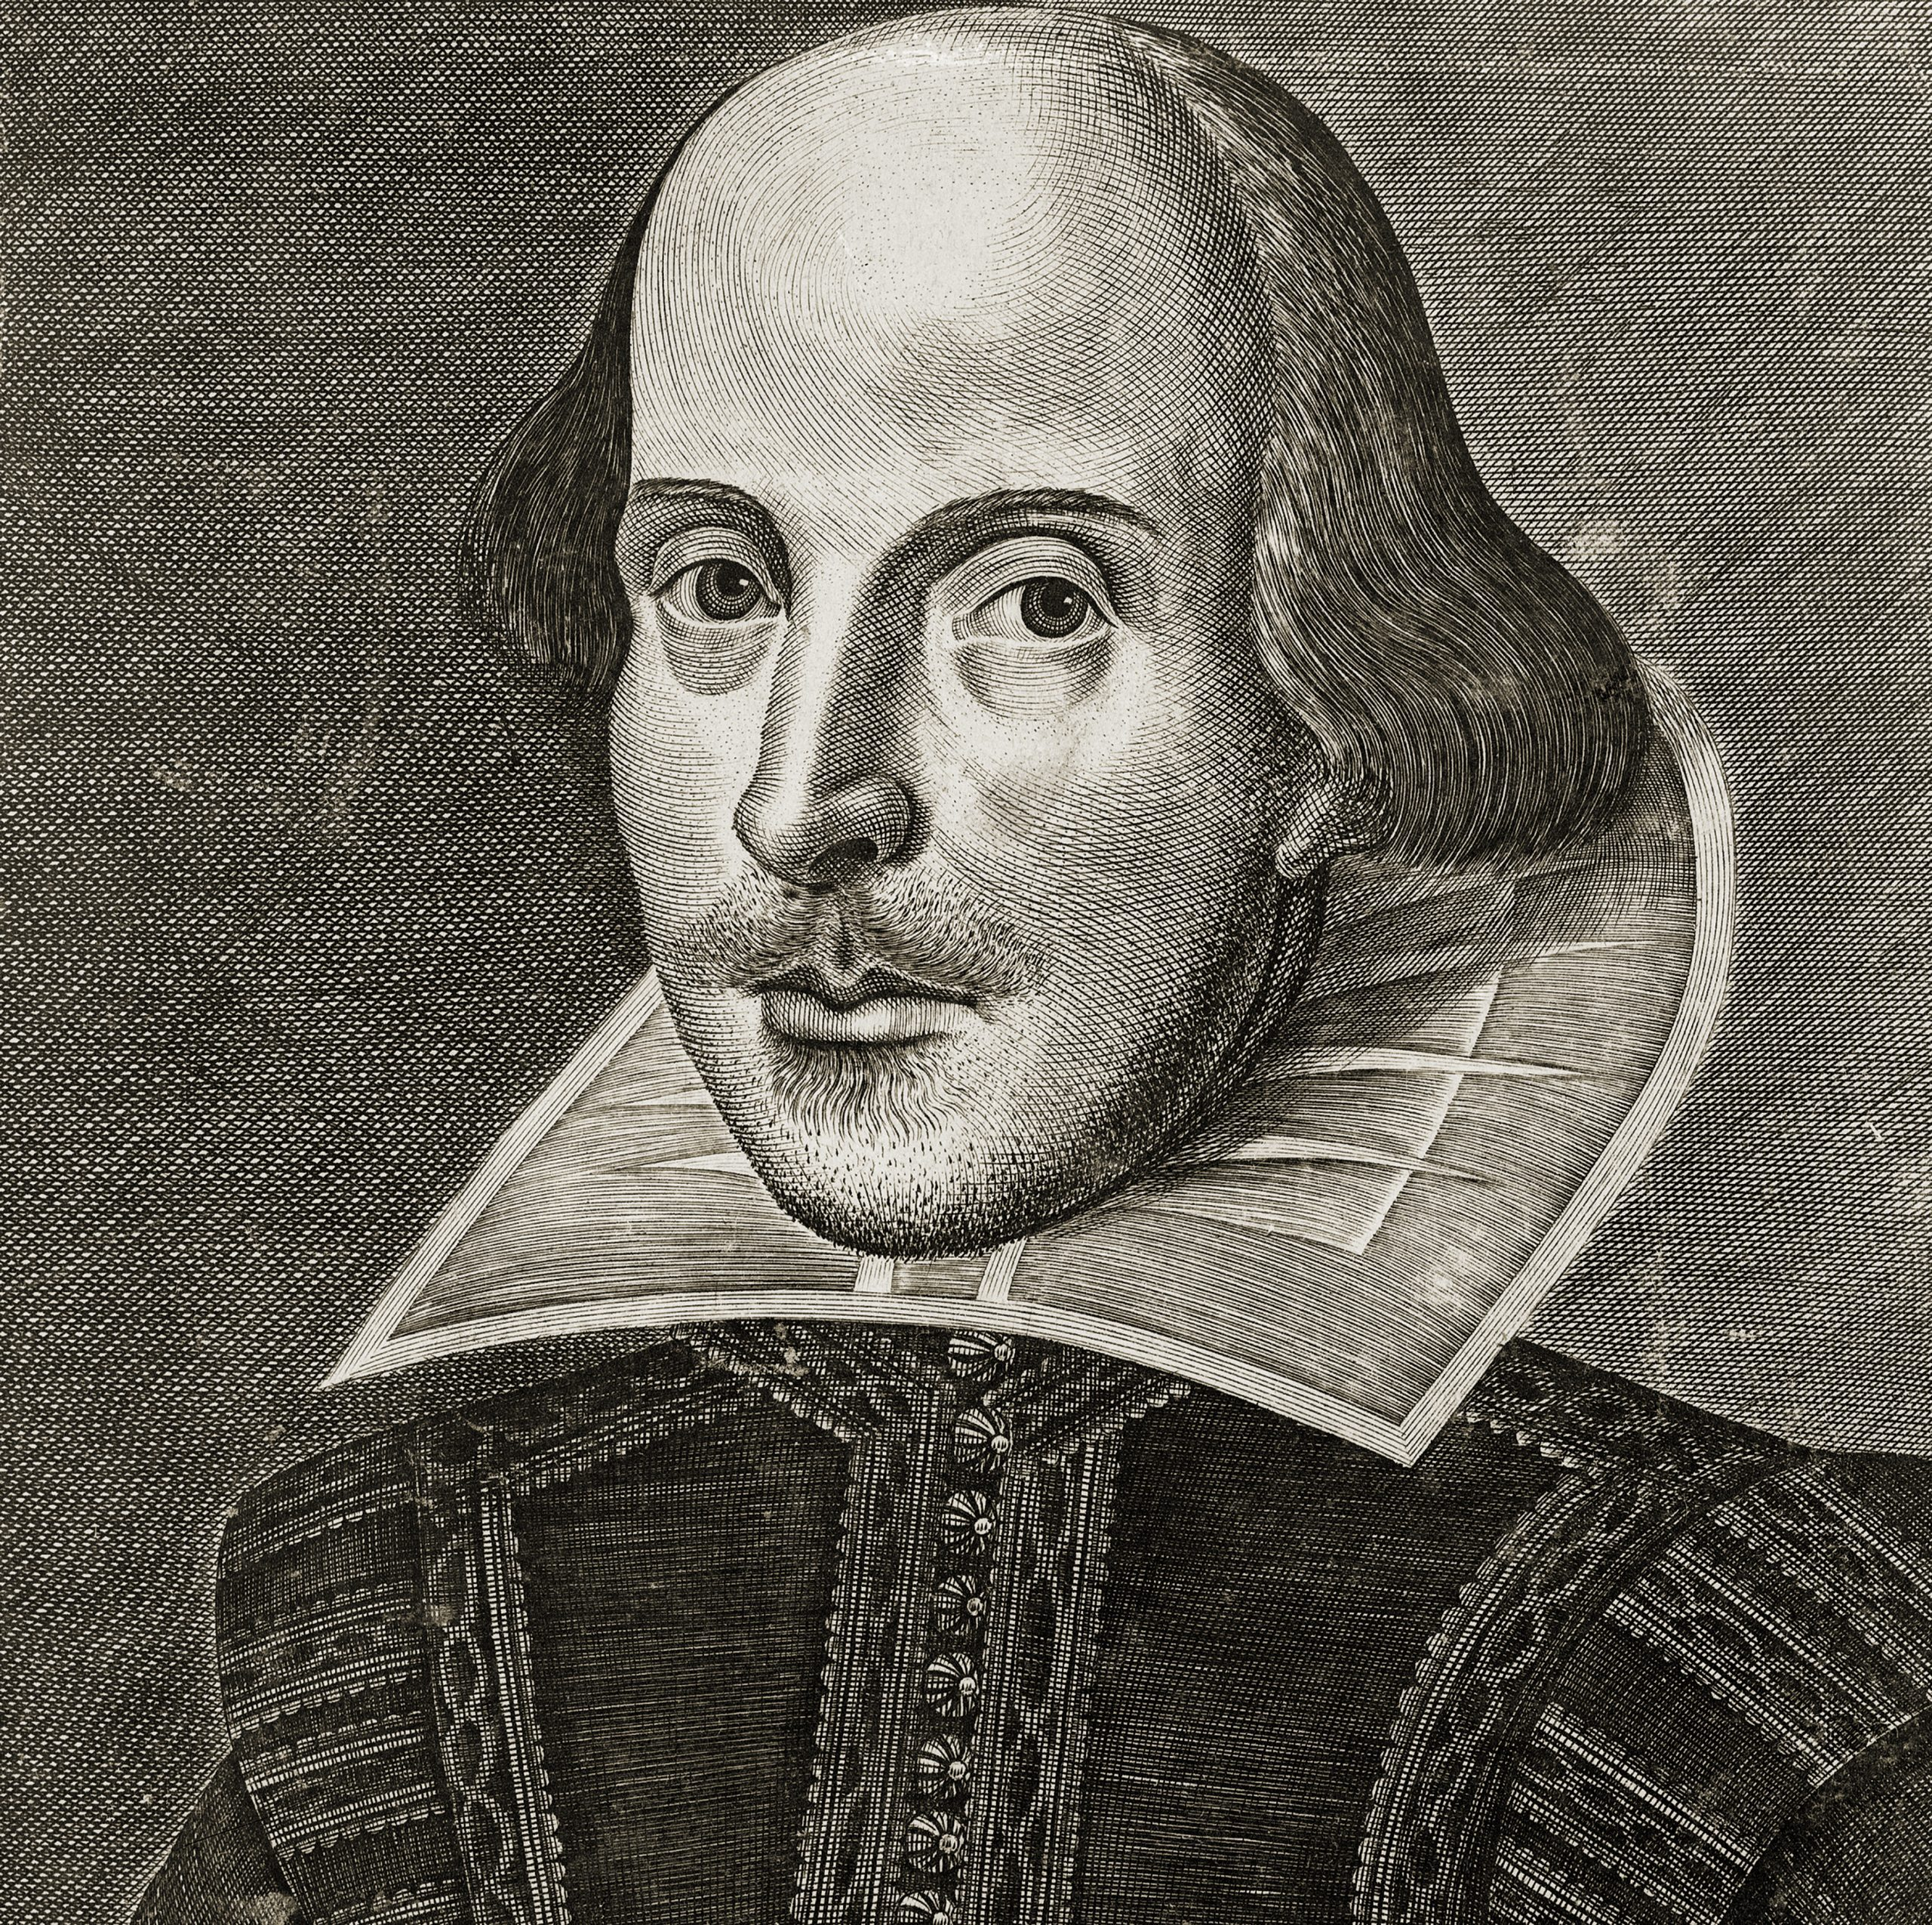 Portrait of William Shakespeare from the title page of the First Folio of Shakespeare's plays; copper engraving by Martin Droeshout, 1623.